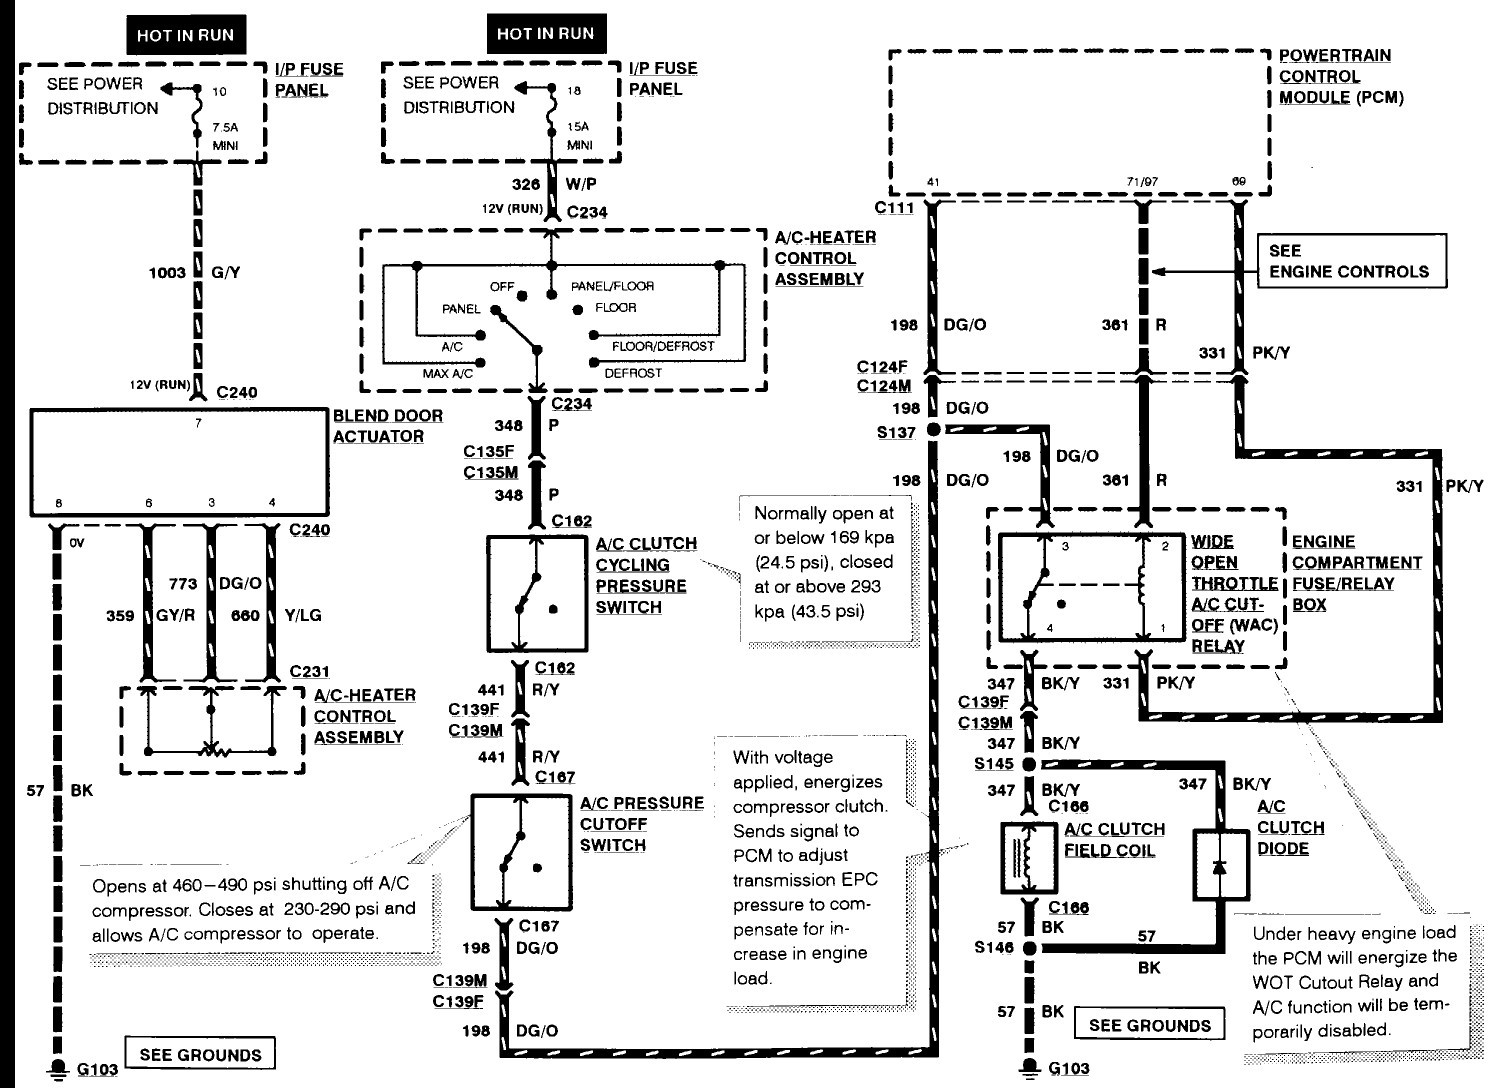 WRG-8579] A C Compressor Clutch Wiring Diagram on